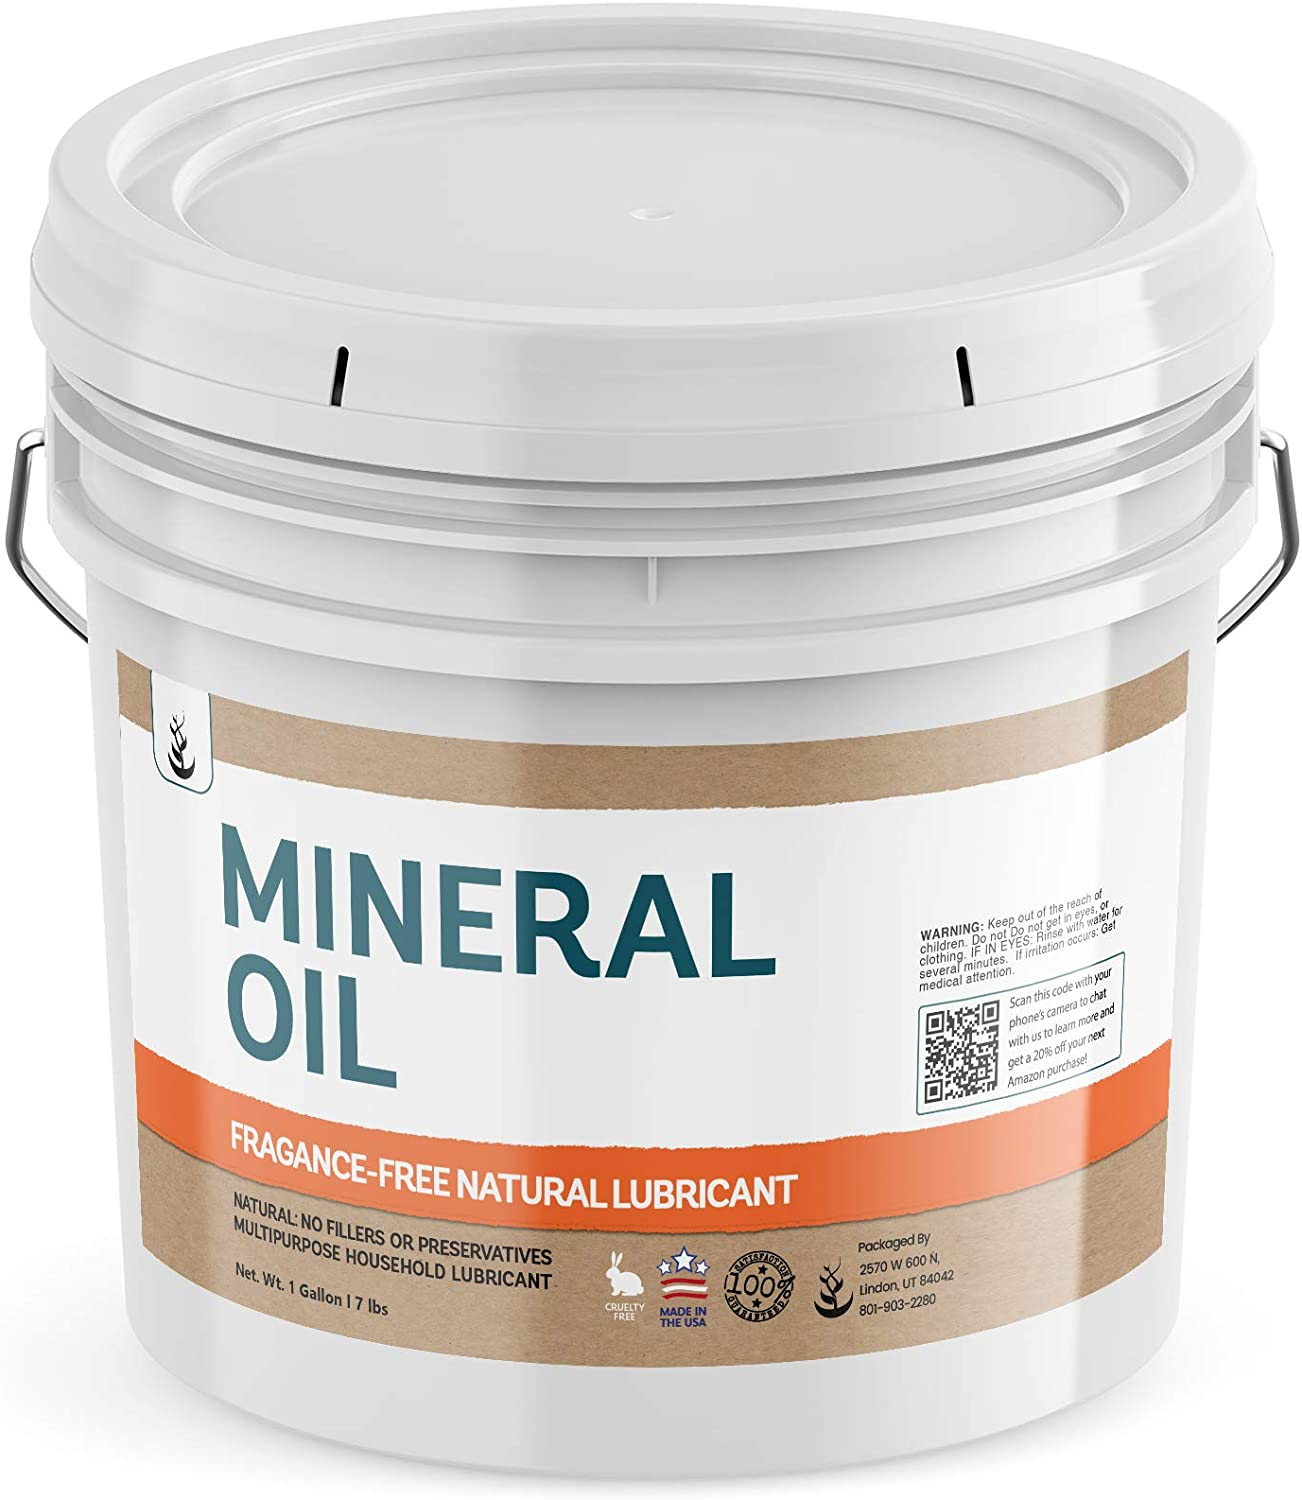 Mineral Oil (1 Gallon Bucket) by Pure Ingredients, Resealable Bucket, Food & USP Grade, Fragrance-Free, Wood Conditioner, Stainless Steel Polish, Moisturizer, Makeup Remover, Lubricant